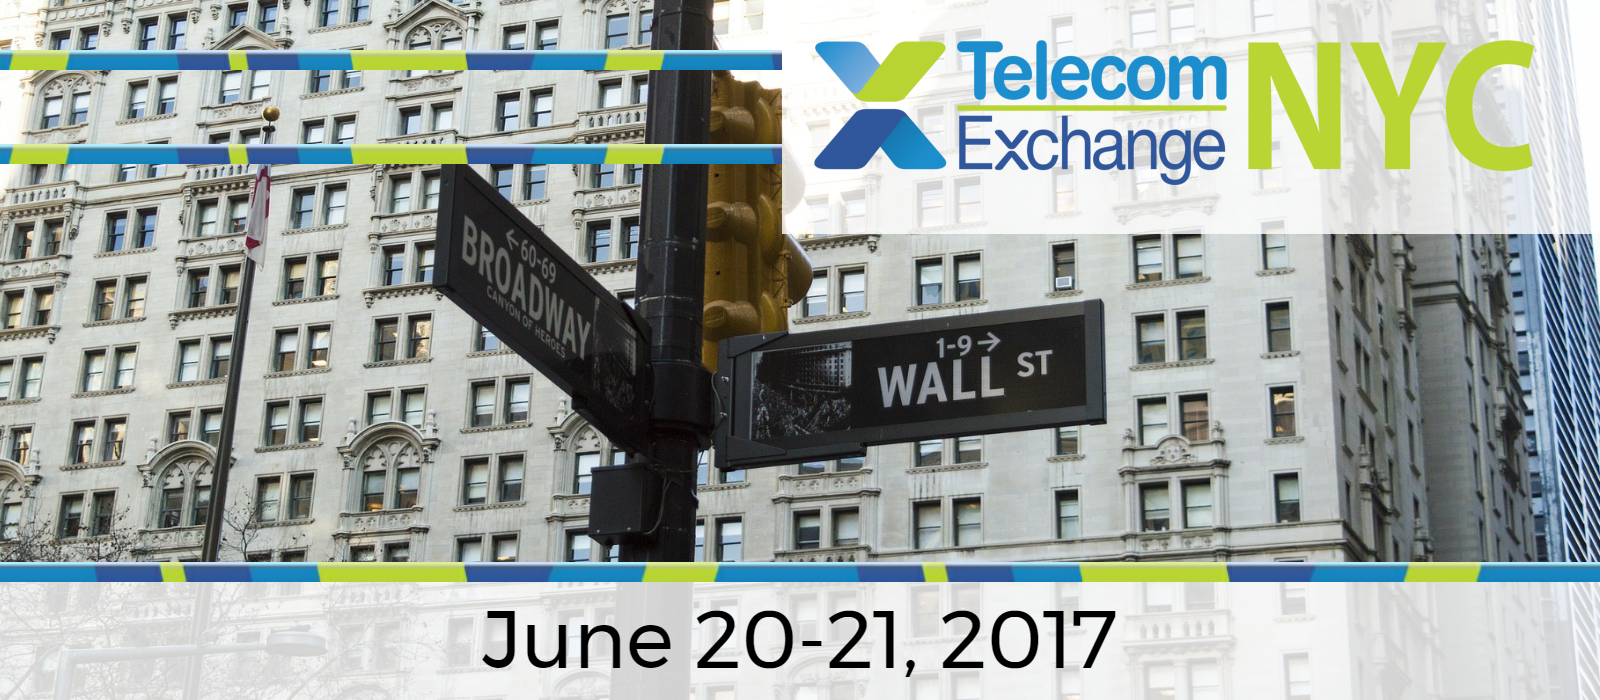 #TEXcited for Telecom Exchange! June 20-21, 2017